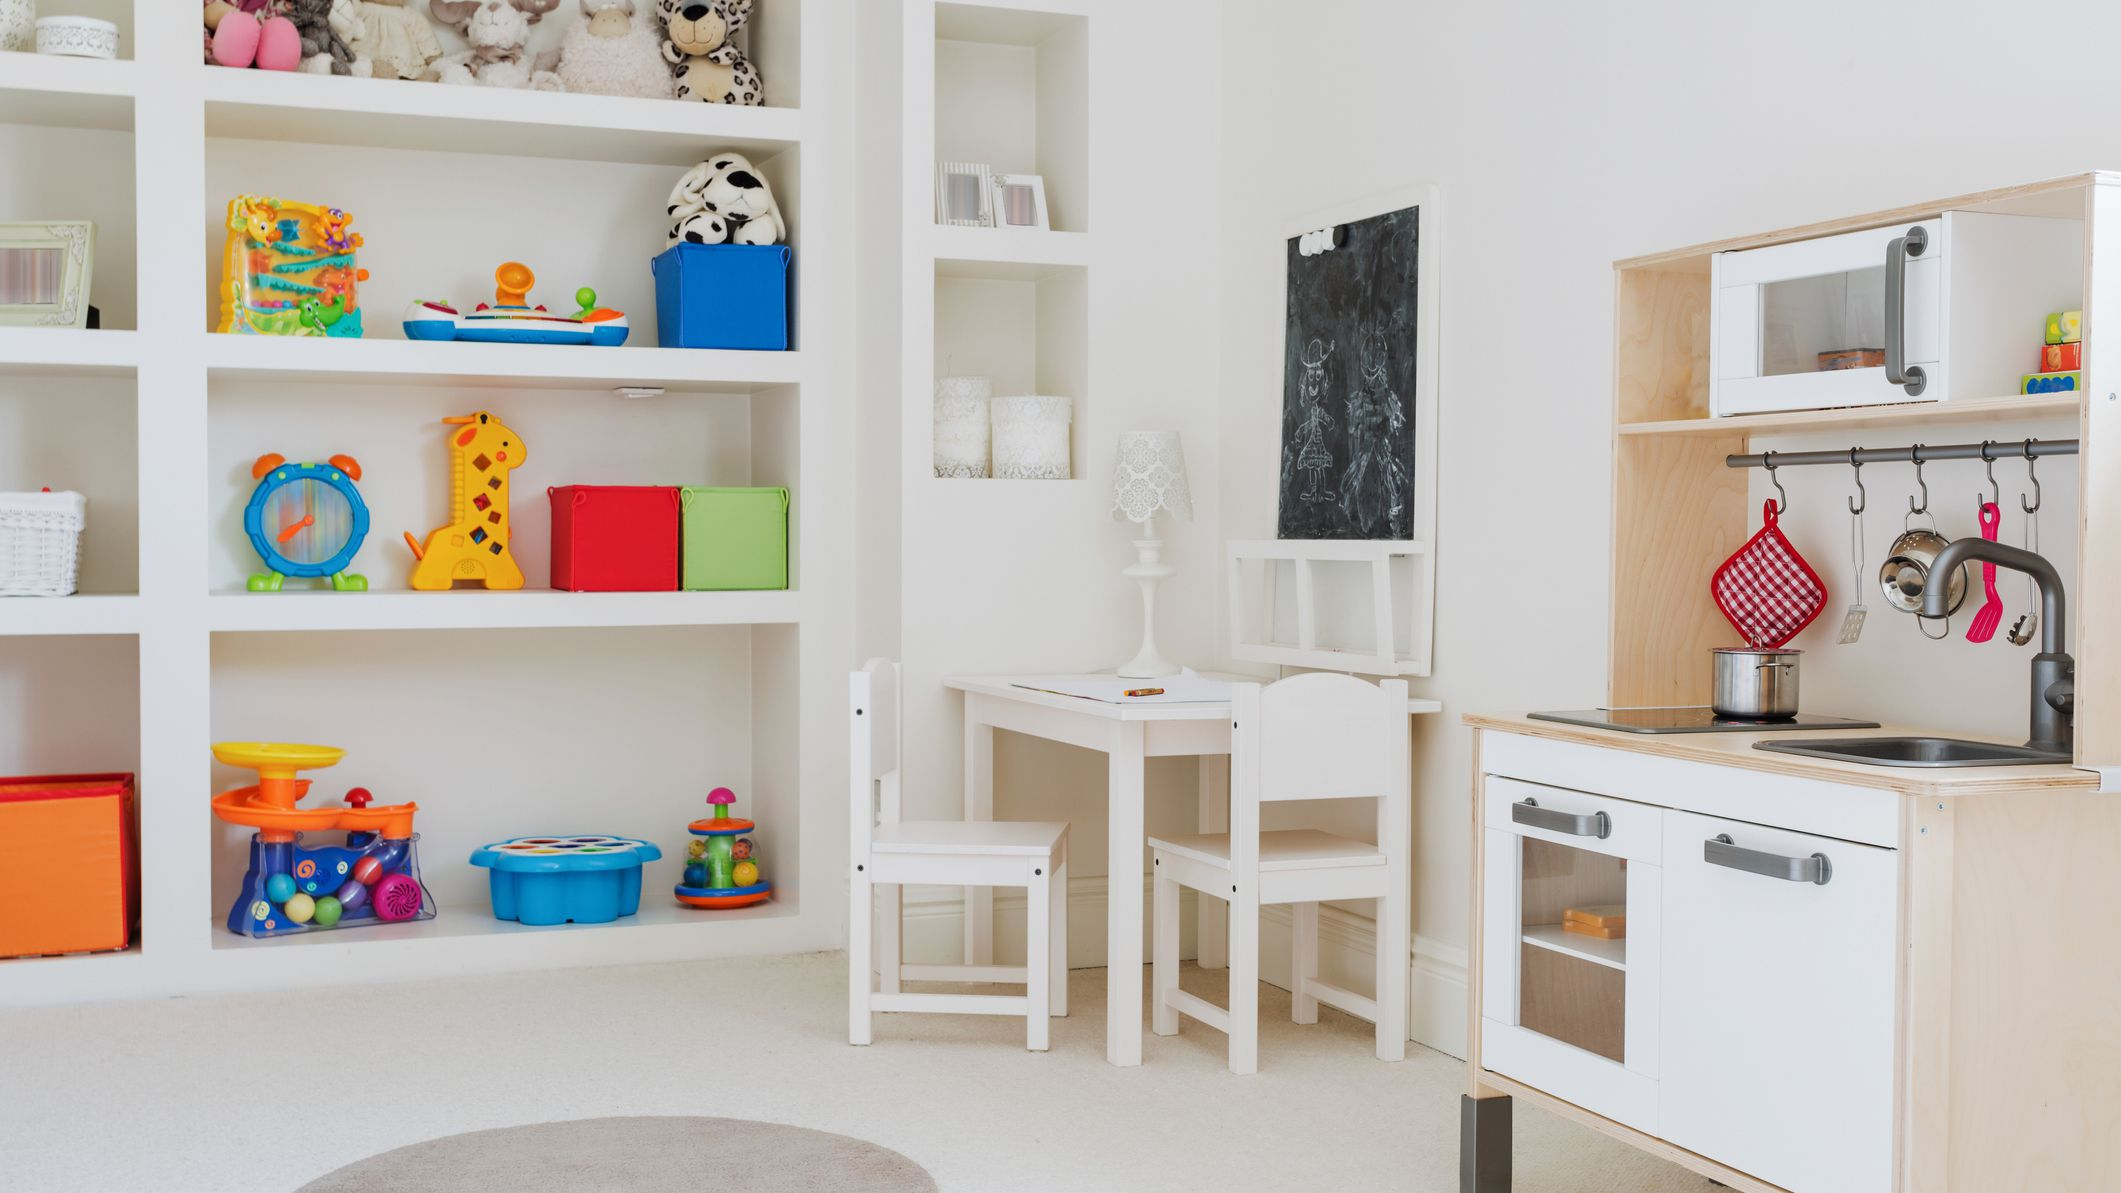 5 Smart Tips When Designing the Kids' Playroom